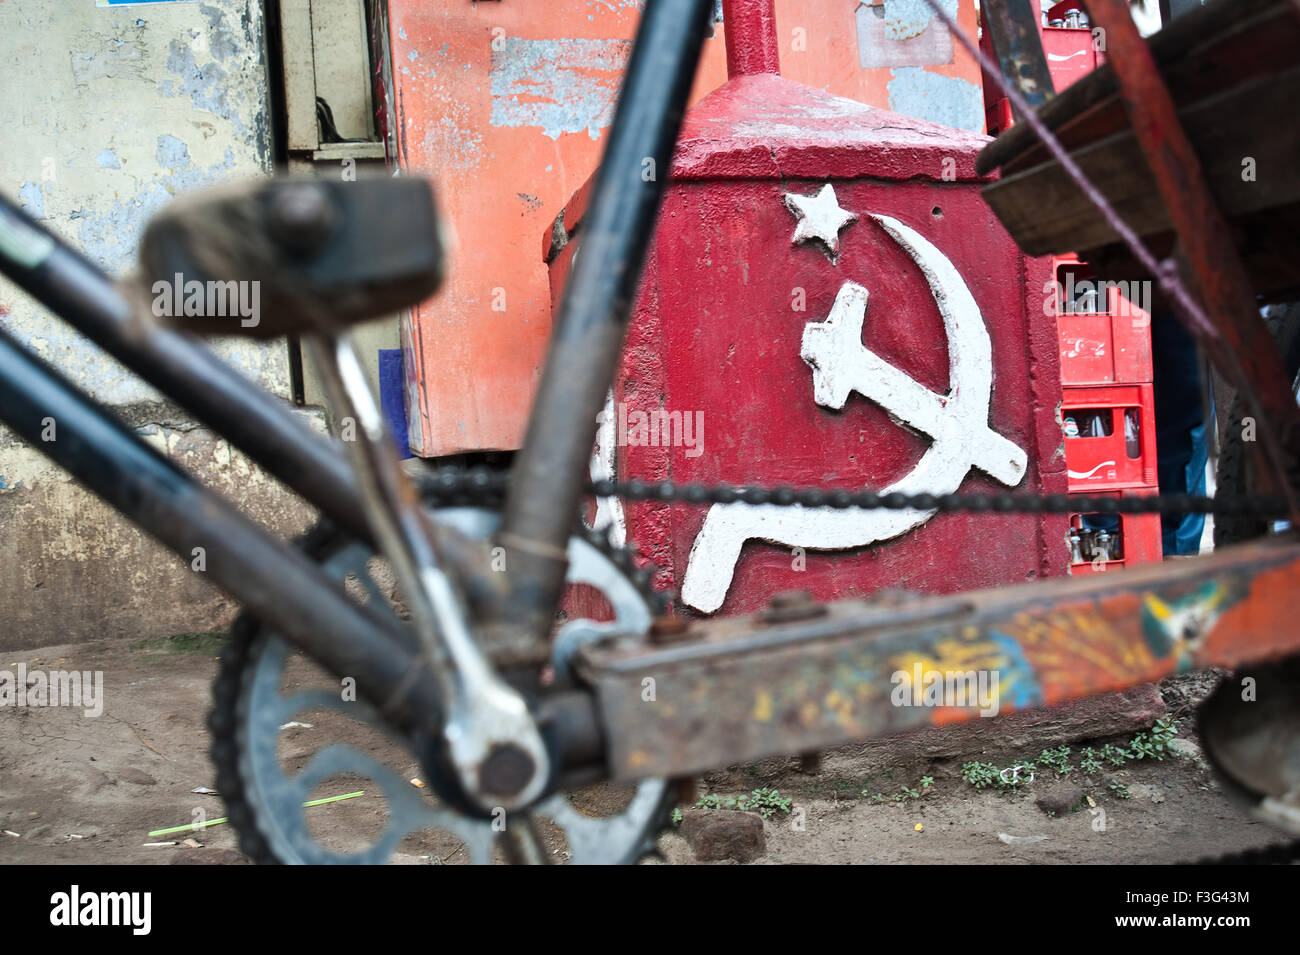 Communist symbol. In the foreground, crankset of a cycle rickshaw ( India) - Stock Image